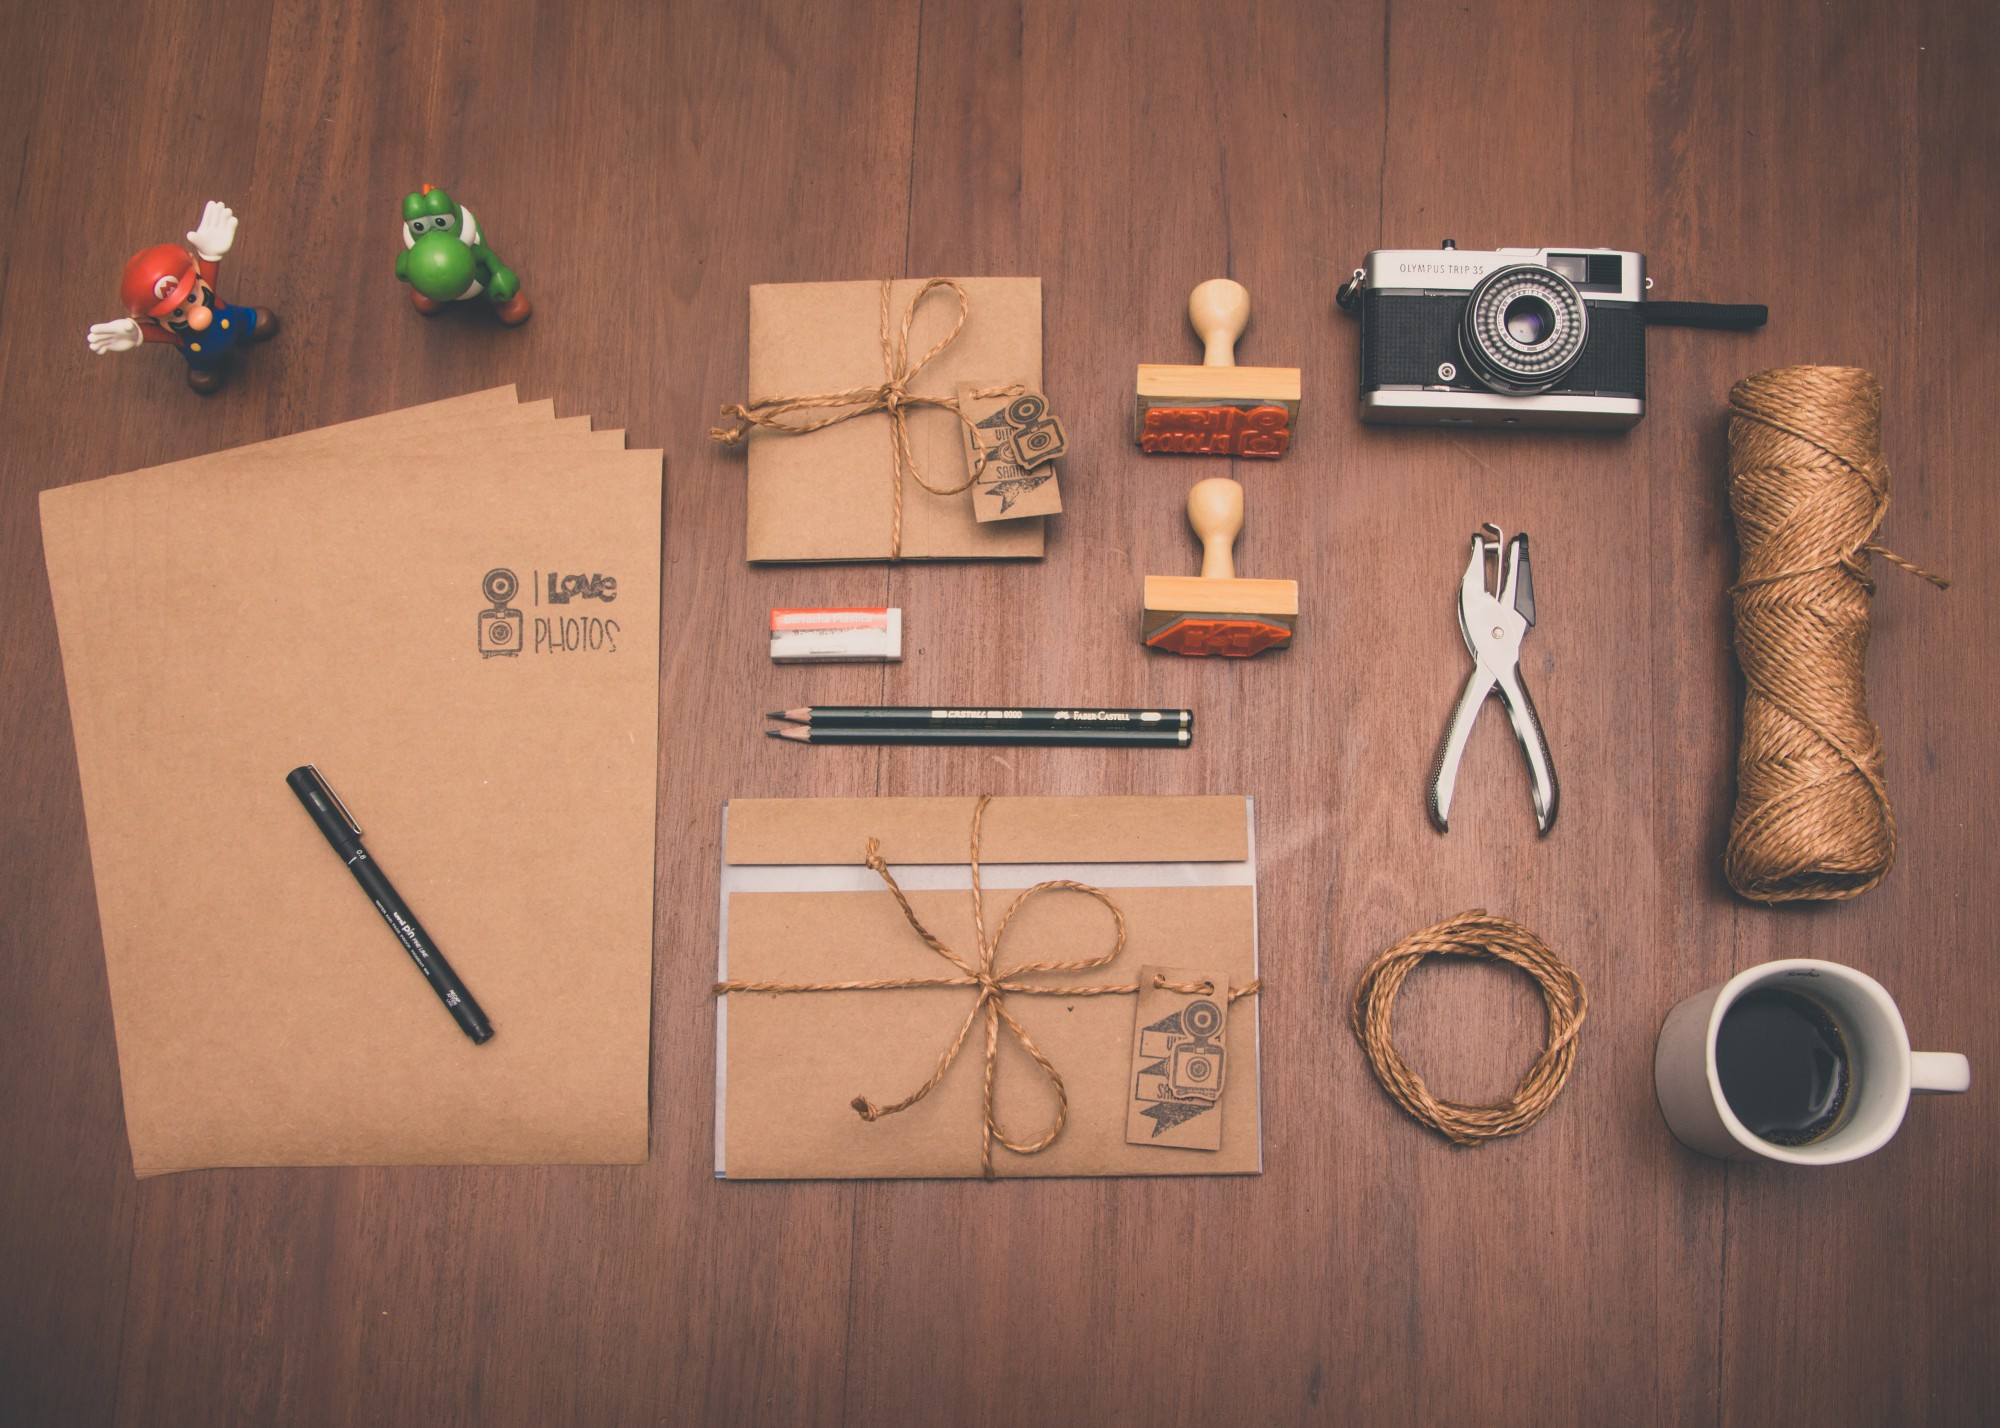 Principles Of Design List : The ever growing list of tools toolkits methods applications